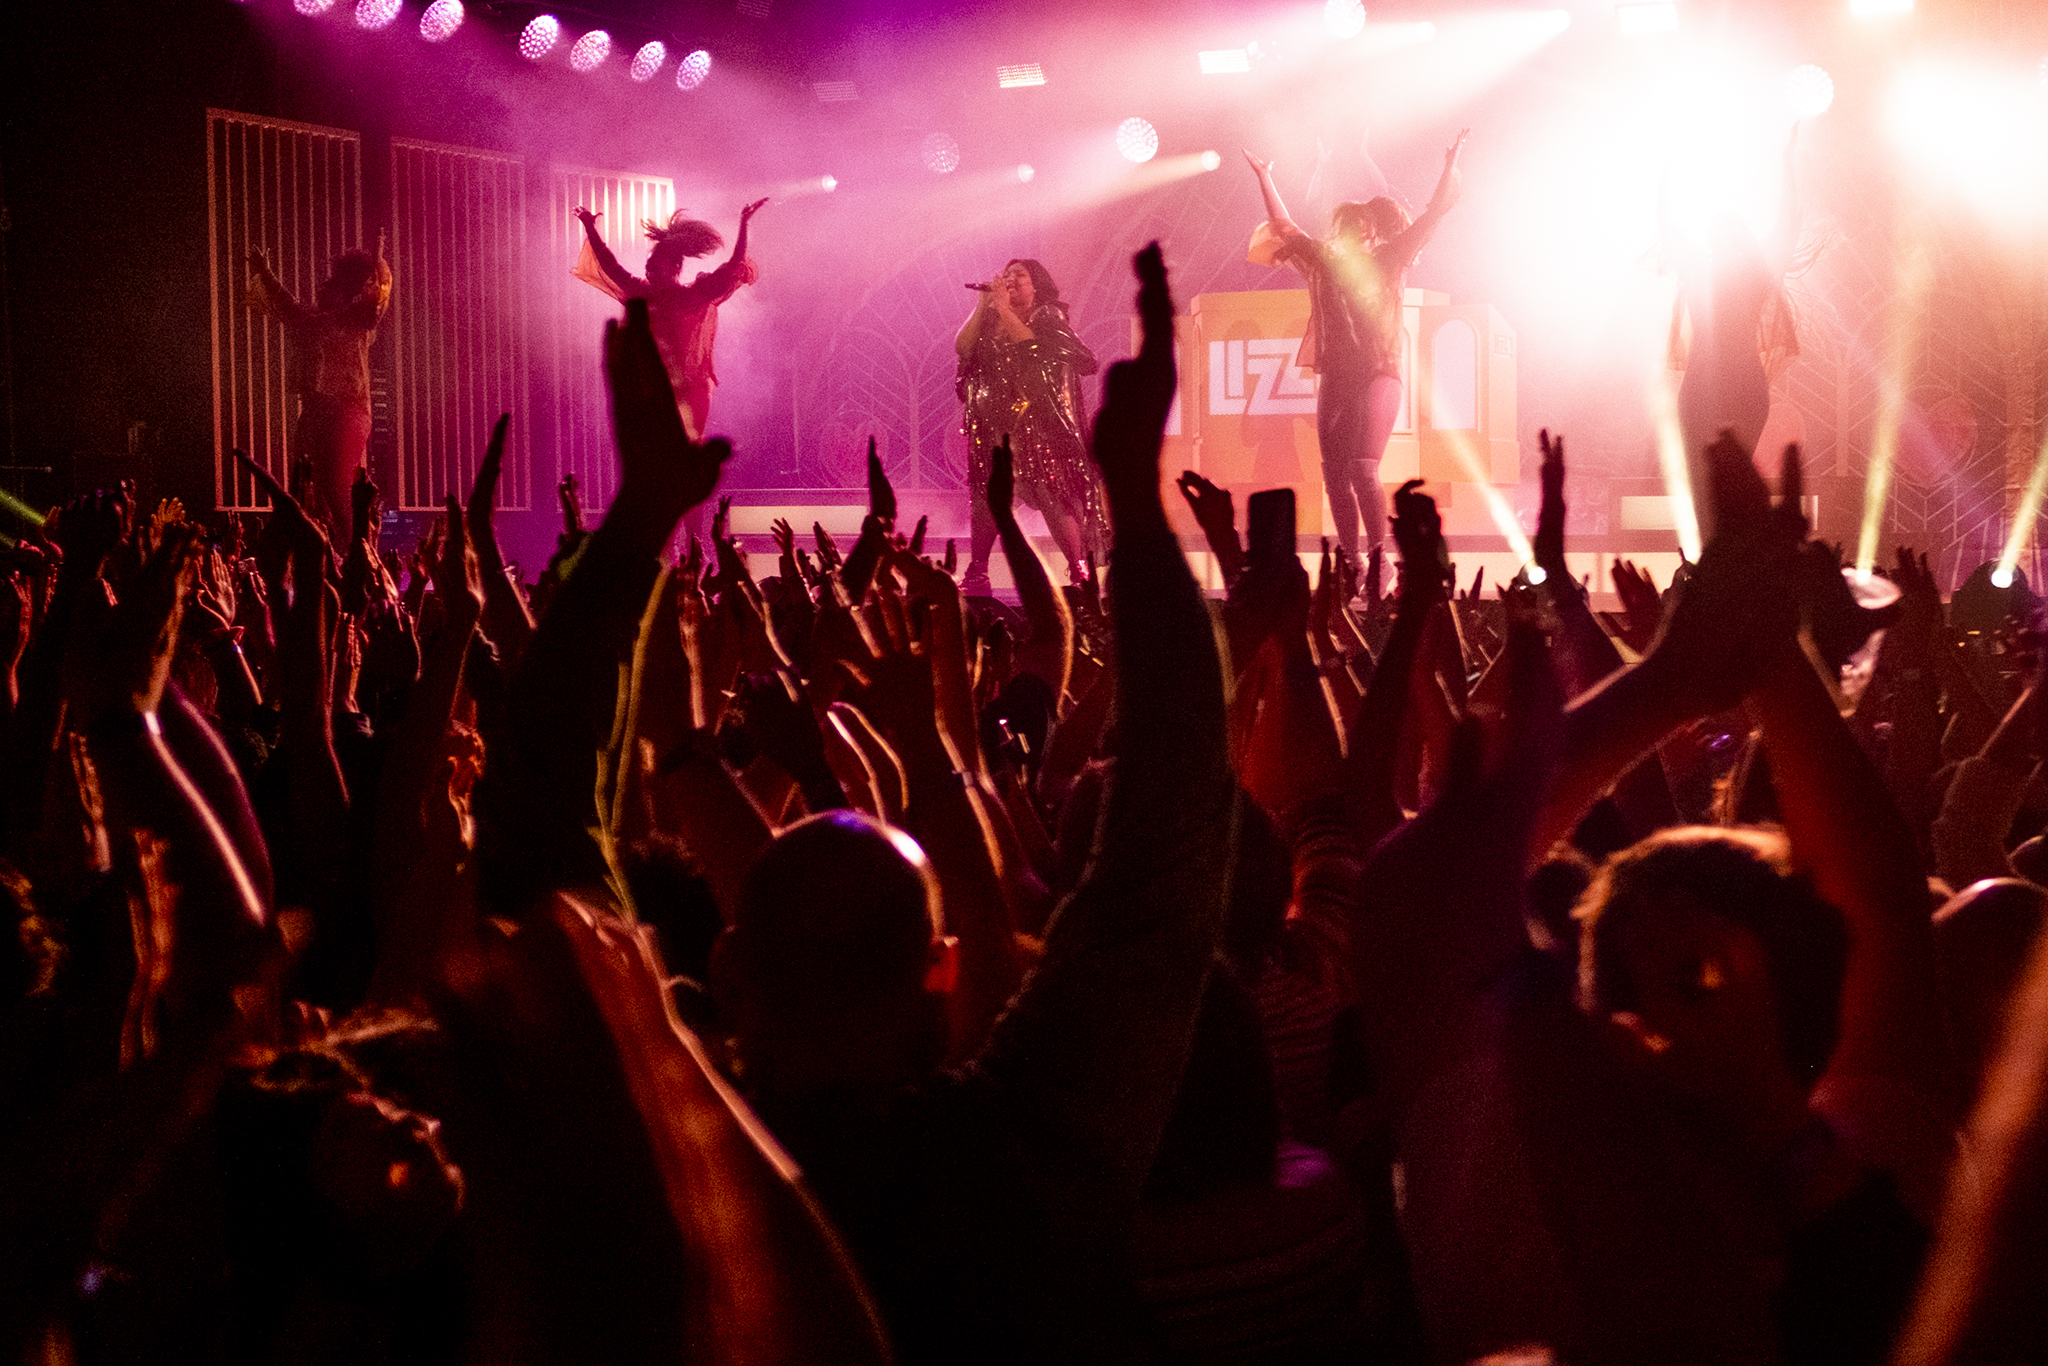 Lizzo plays the Fillmore on Colfax Avenue. Oct. 15, 2019. (Kevin J. Beaty/Denverite)